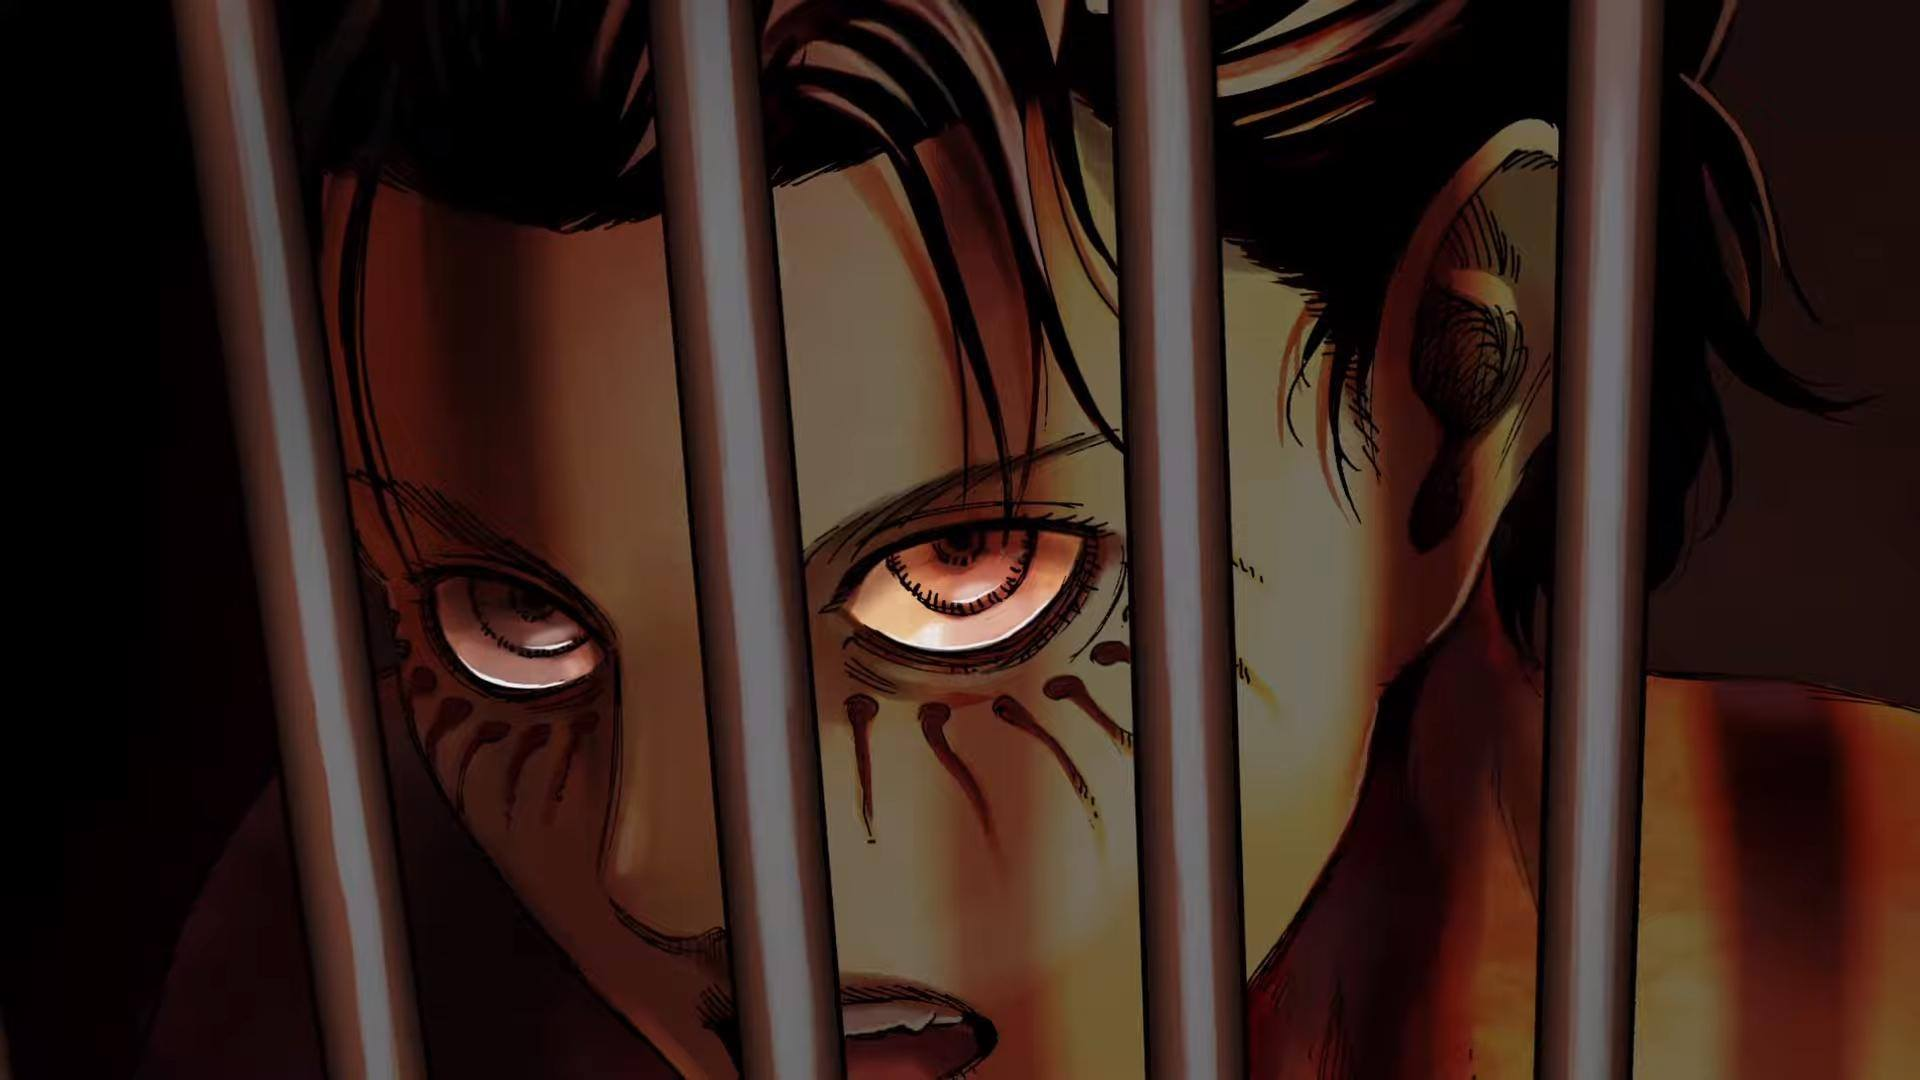 Attack on Titan Manga Editor Gives Fans An Update On Chapter 119